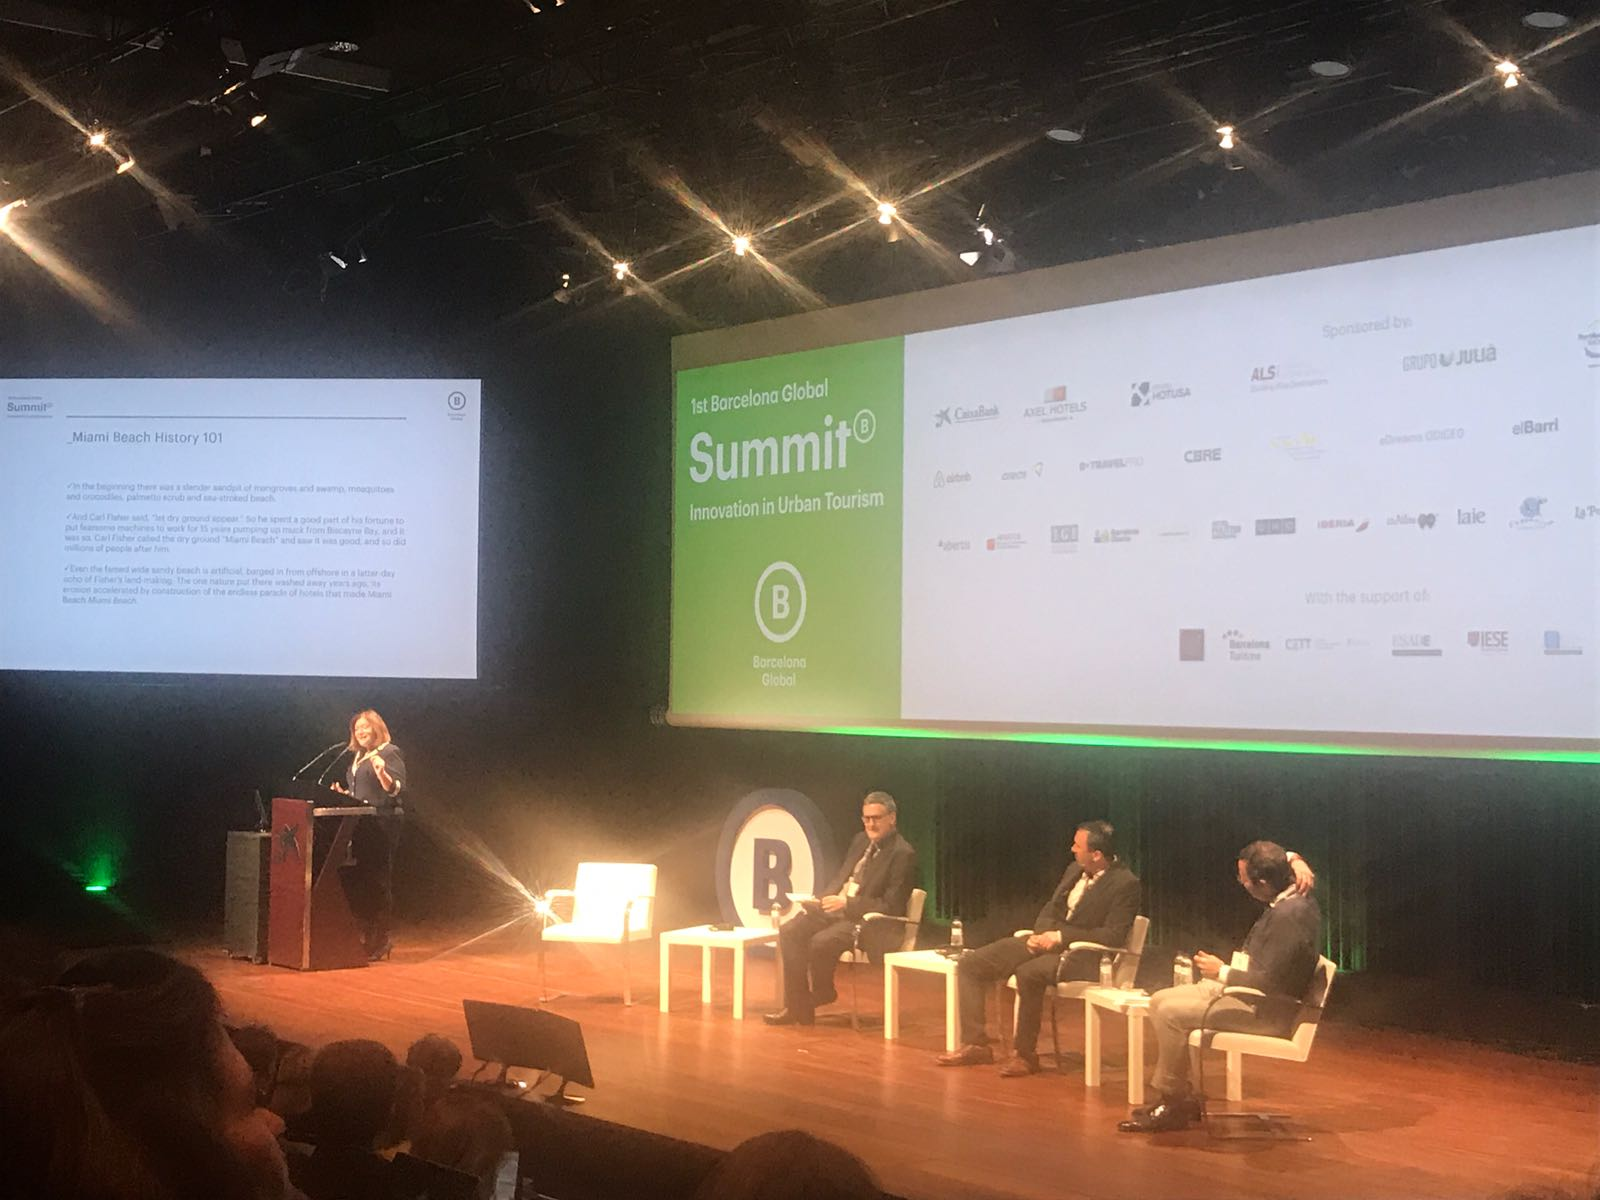 1st Barcelona Global Summit Innovation in Urban Tourism